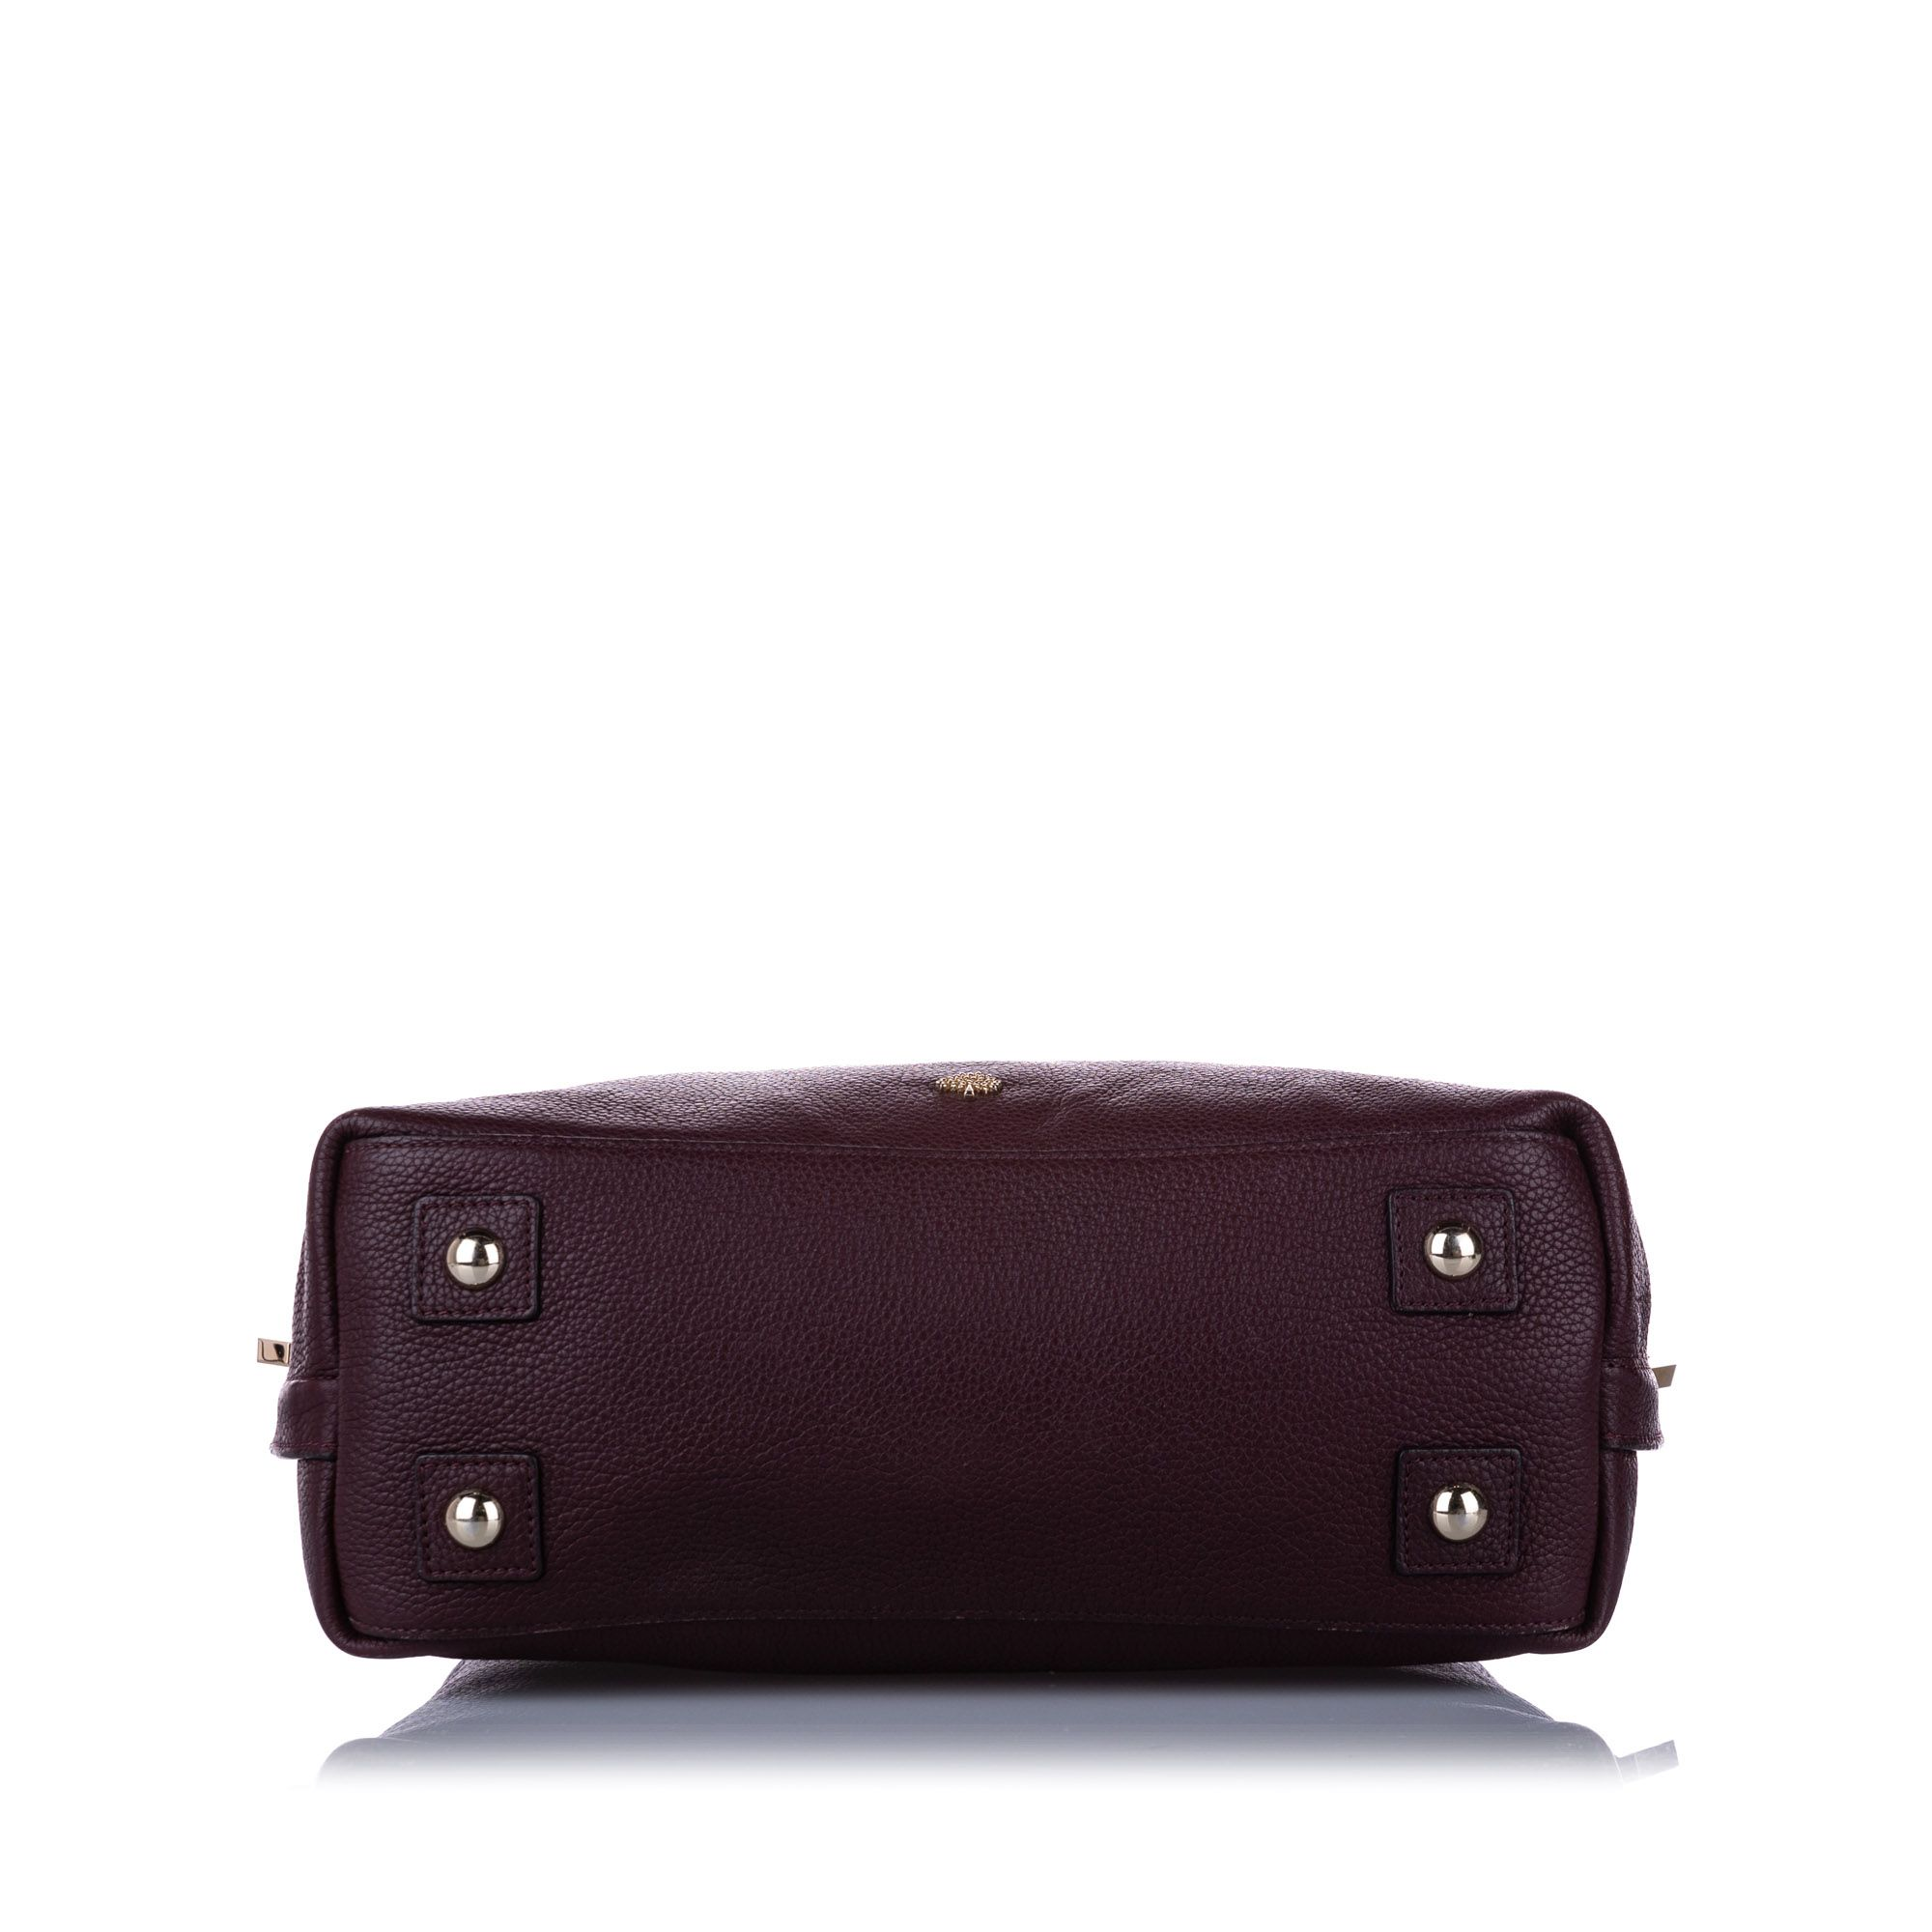 Vintage Mulberry Leather Satchel Brown